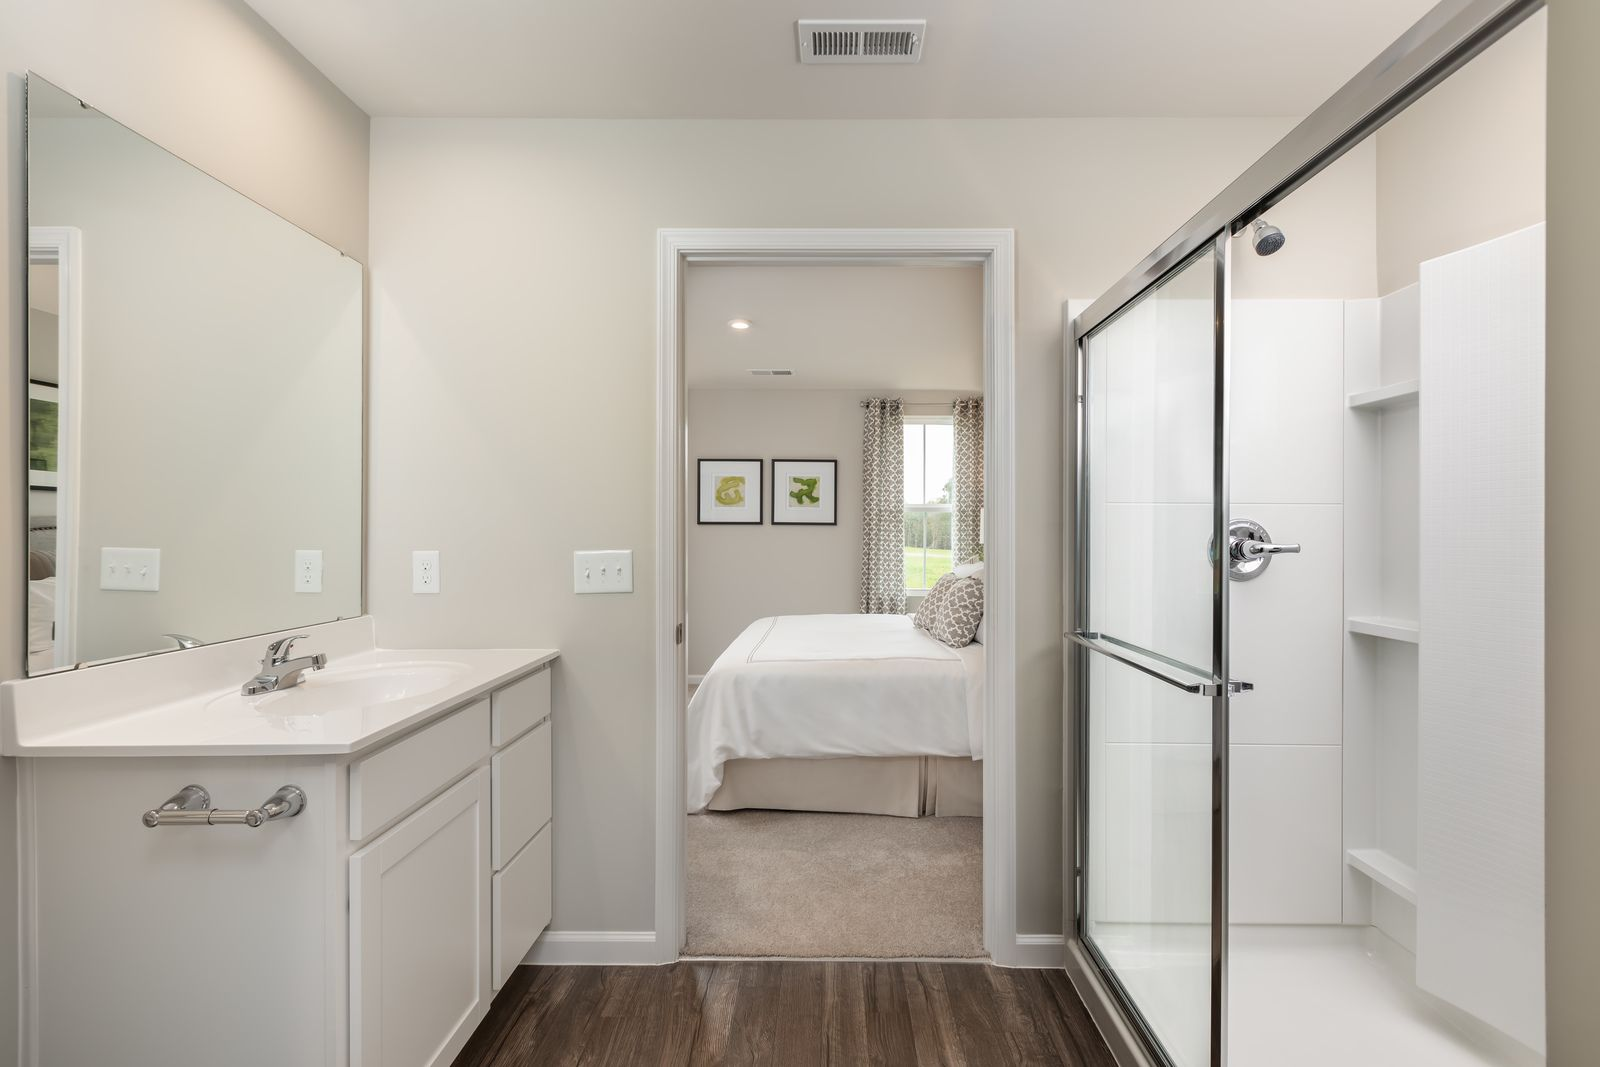 Bathroom featured in the Spruce By Ryan Homes in Columbia, SC